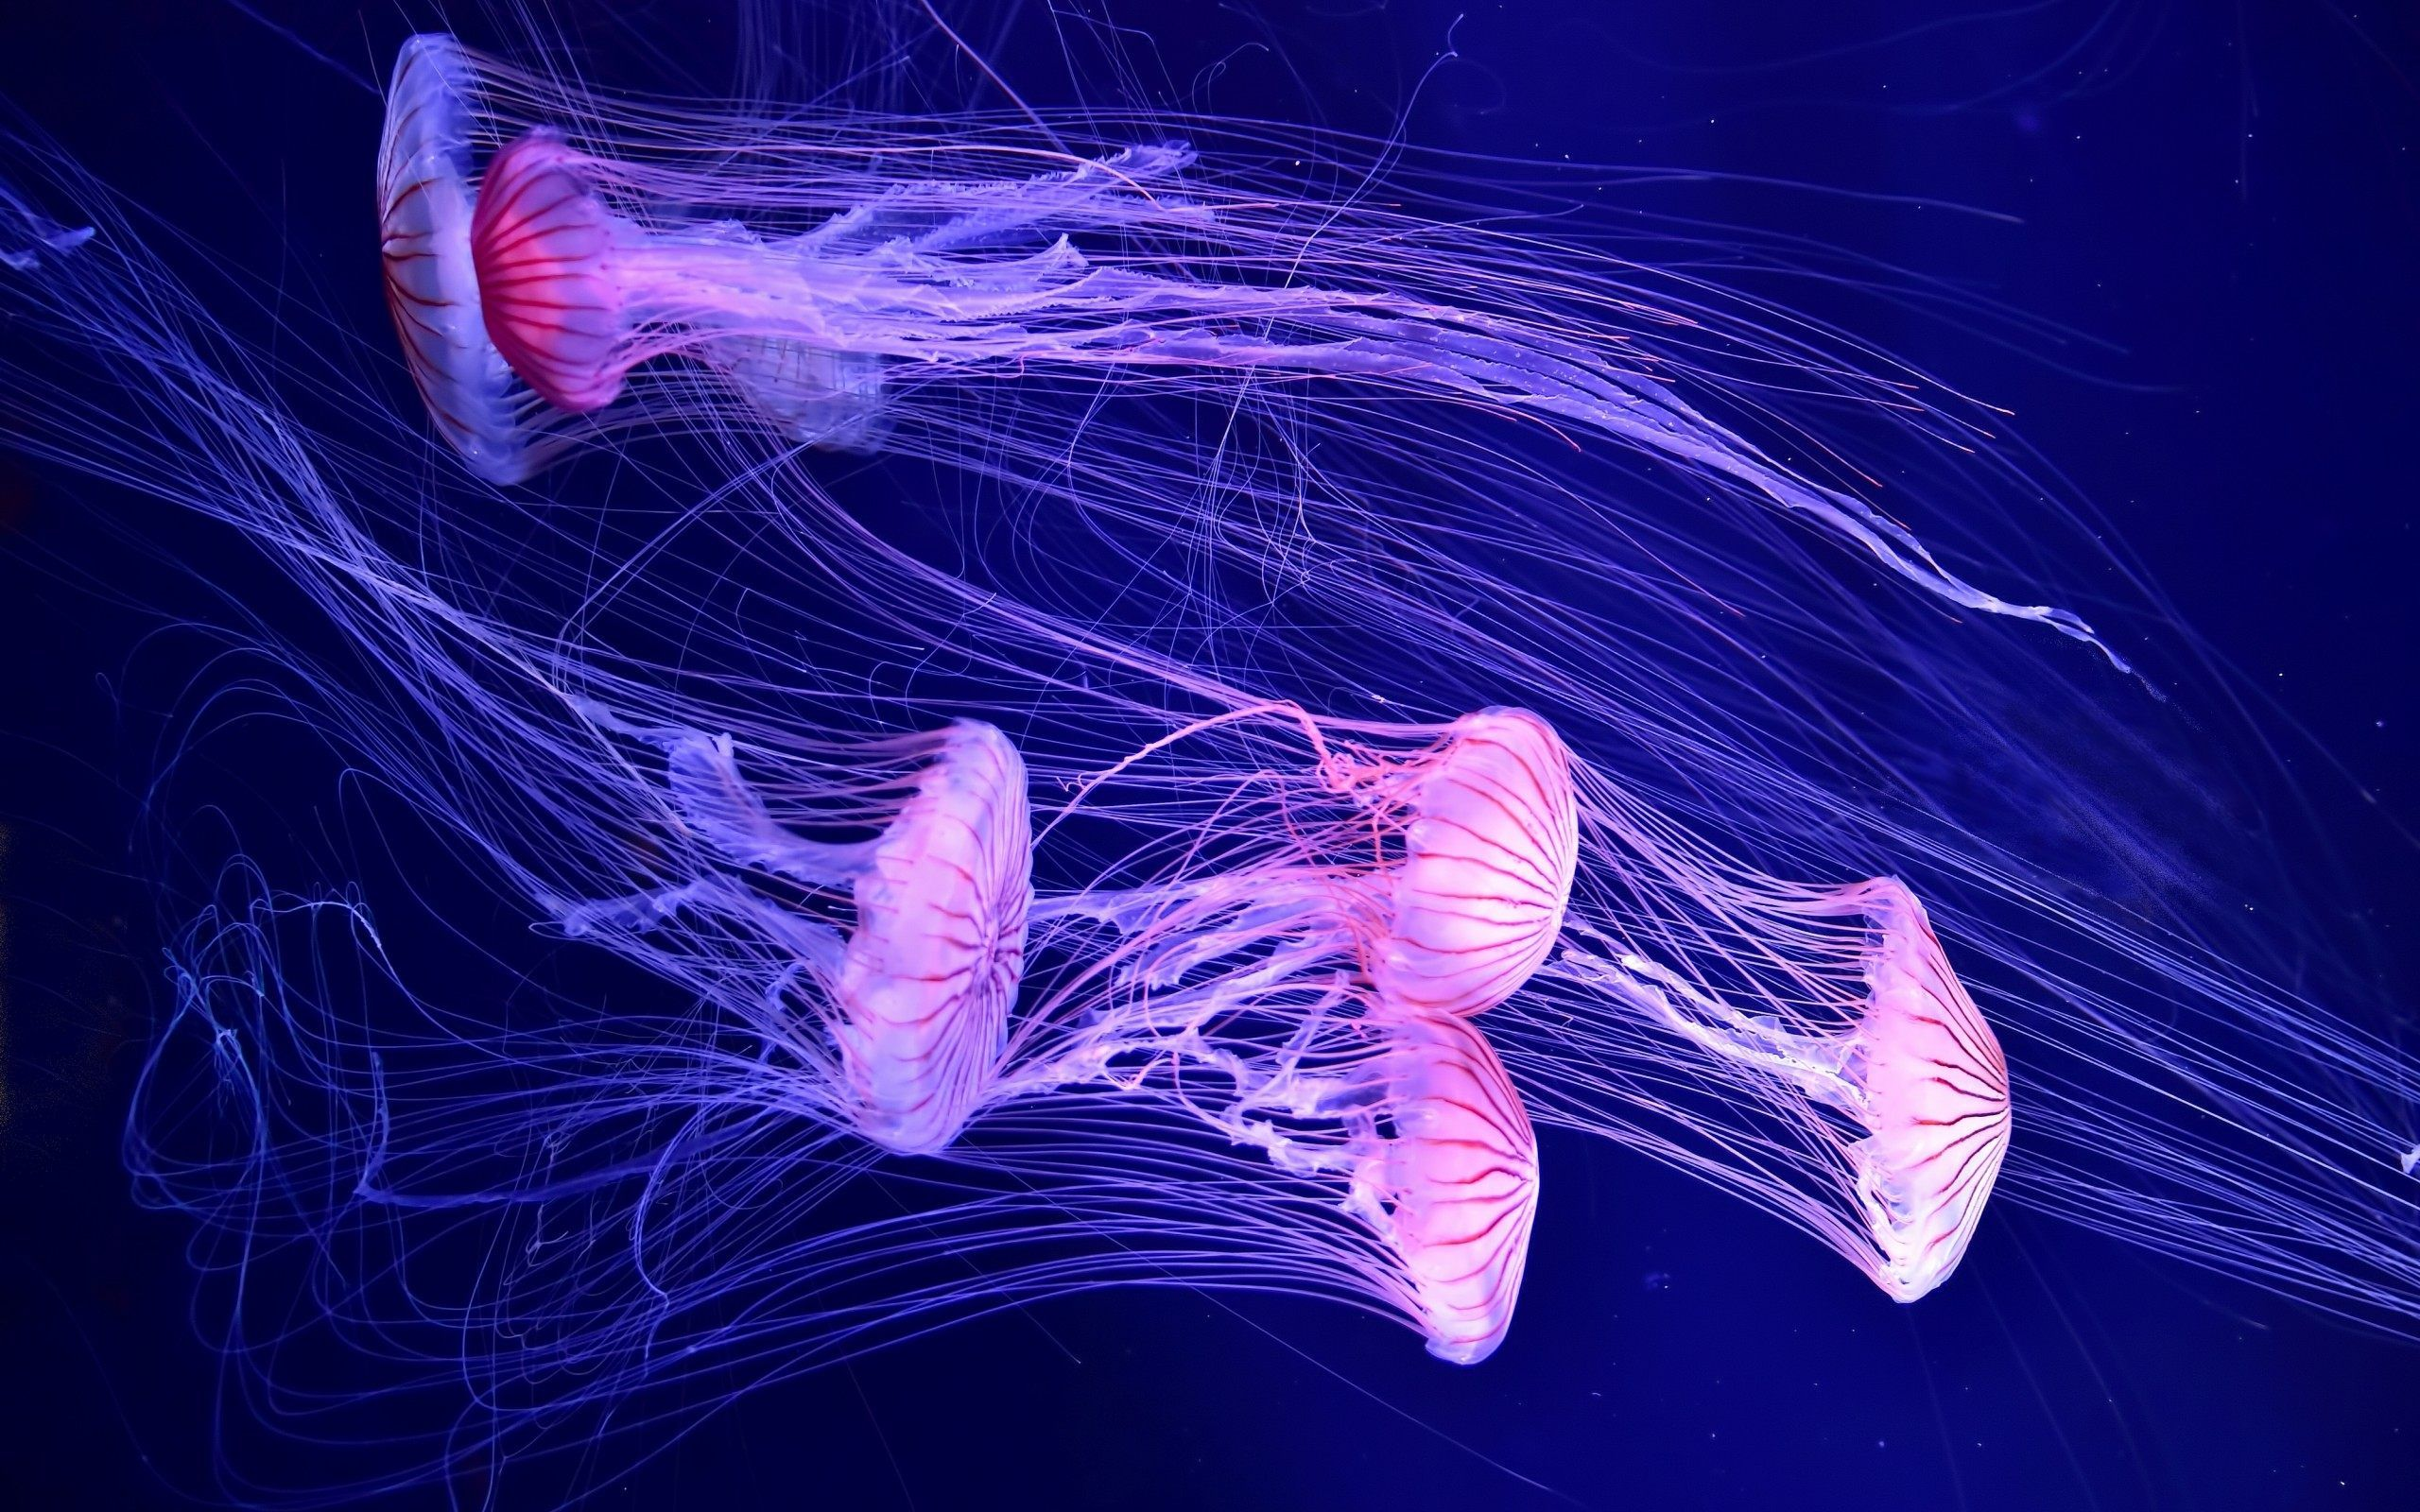 show me a picture of a jellyfish